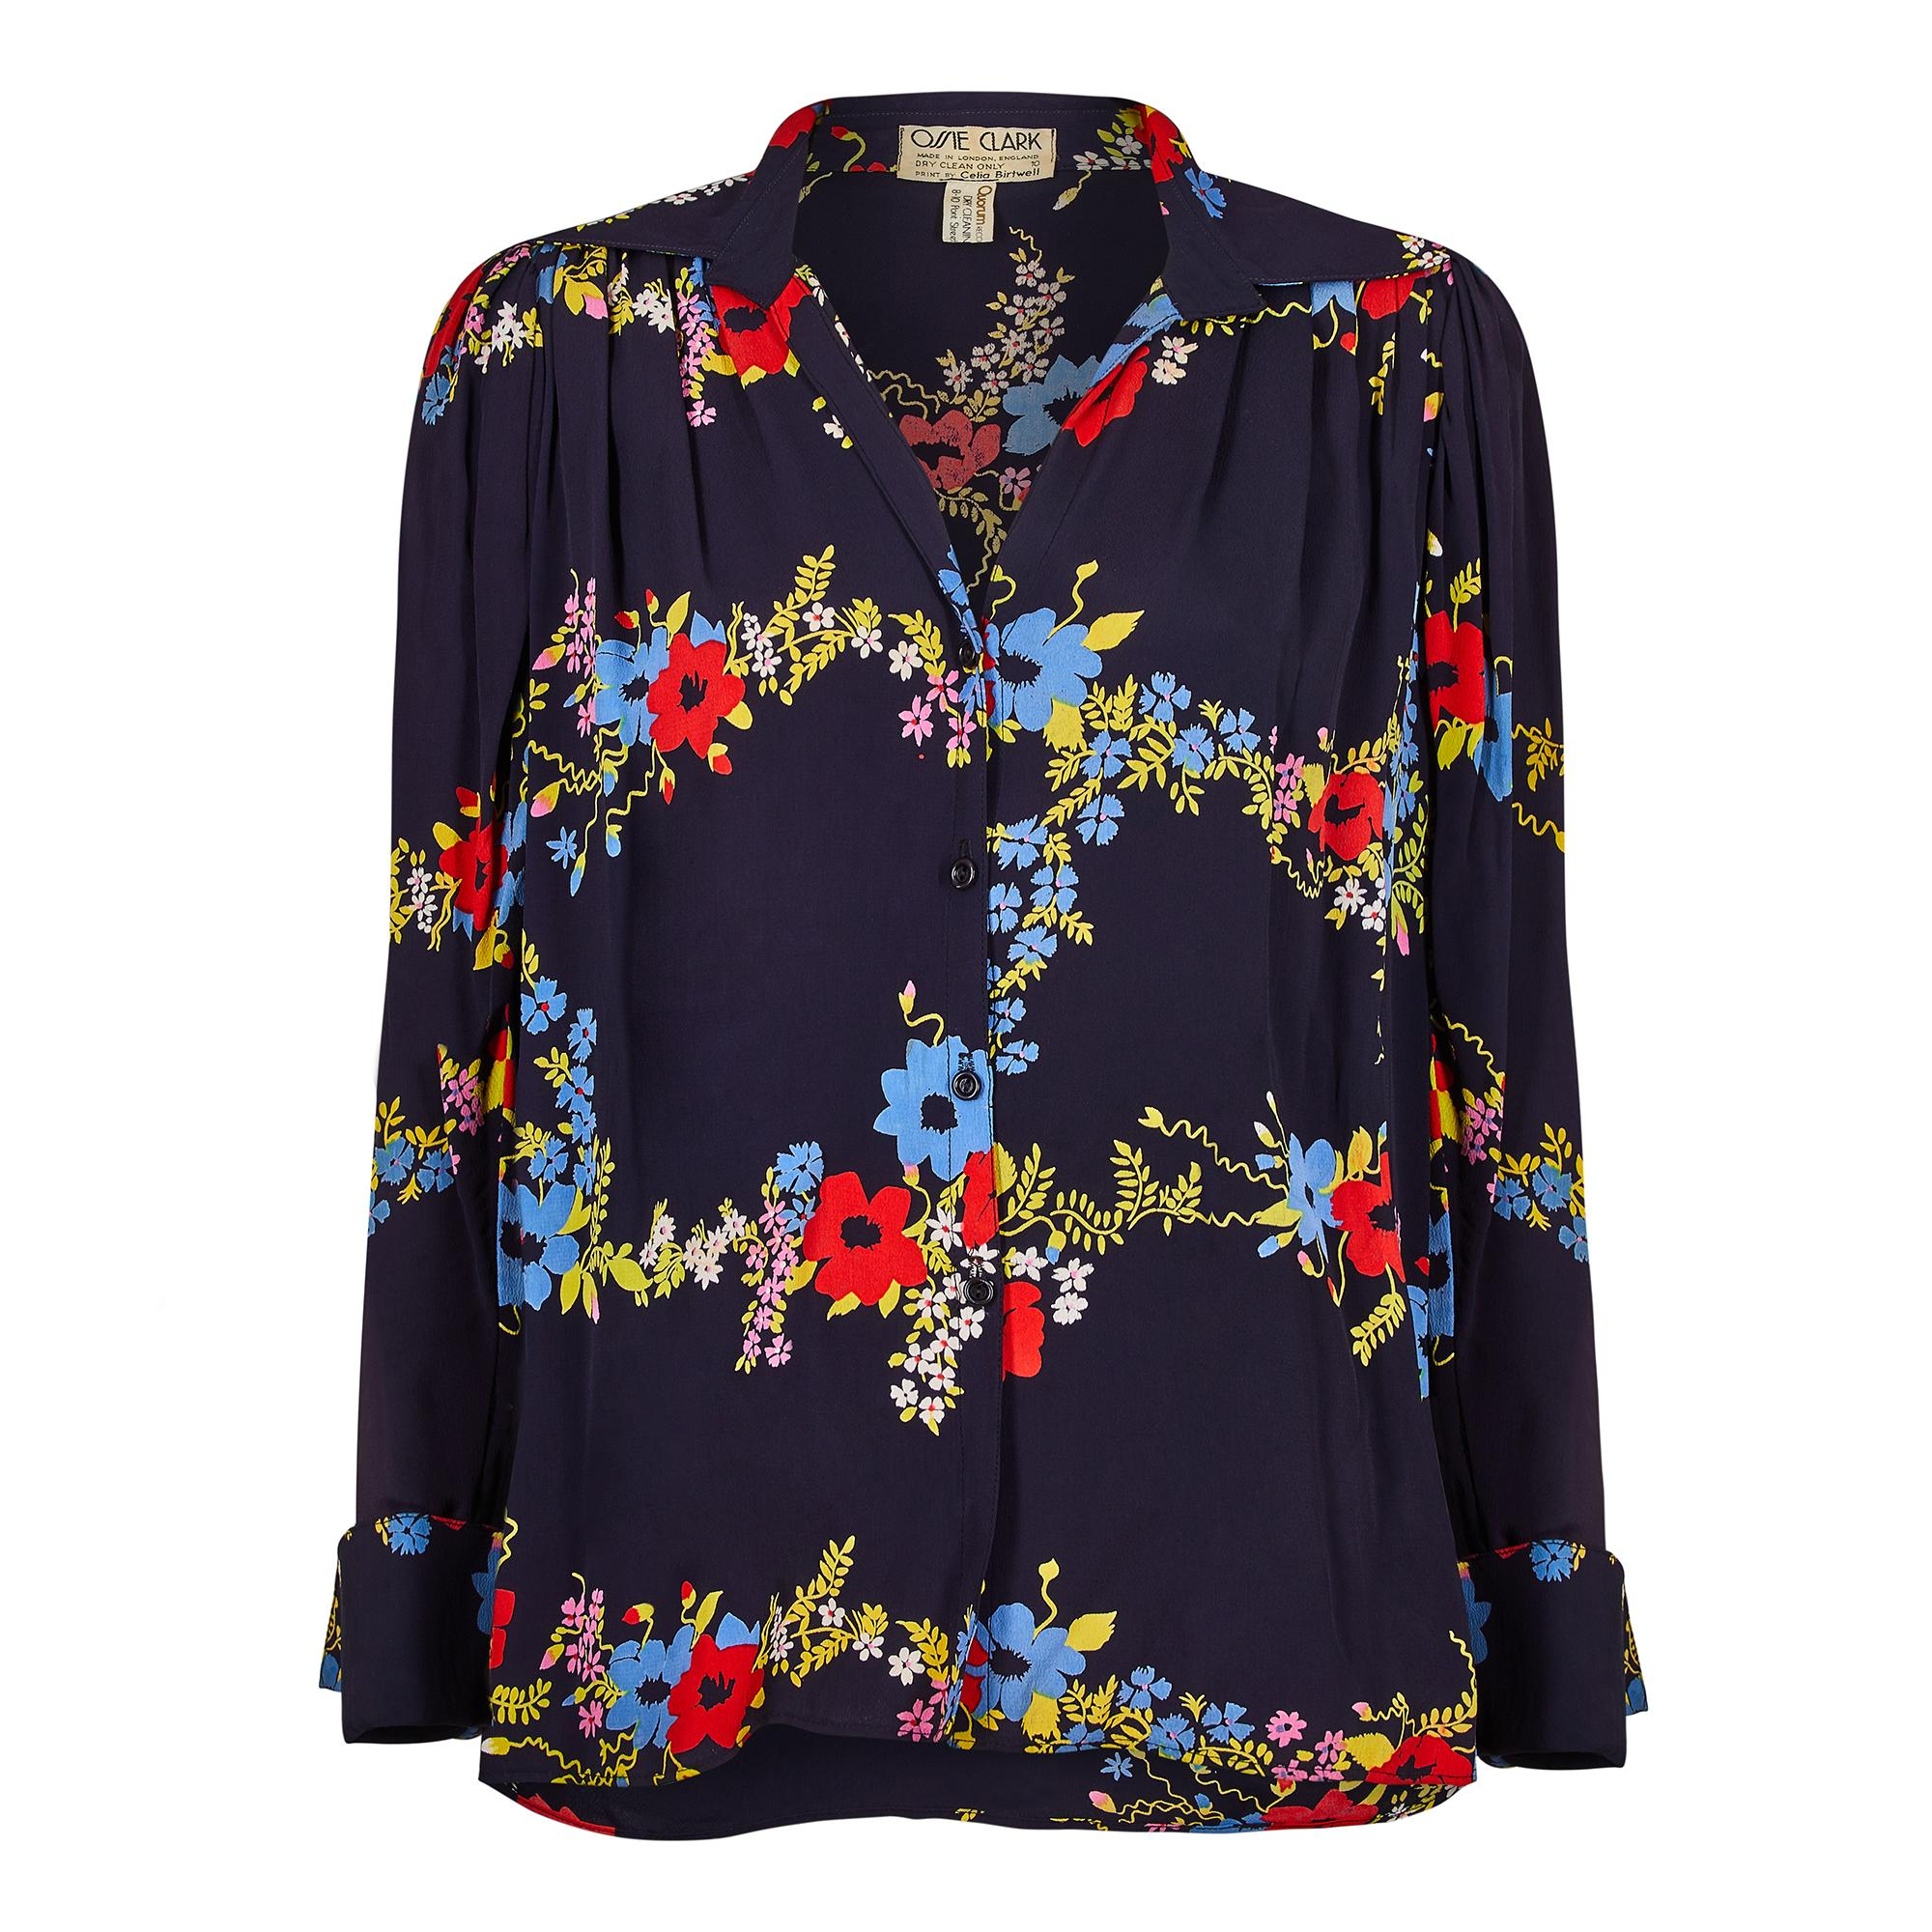 1970s Ossie Clark Navy Floral Print Blouse with Celia Birtwell Print